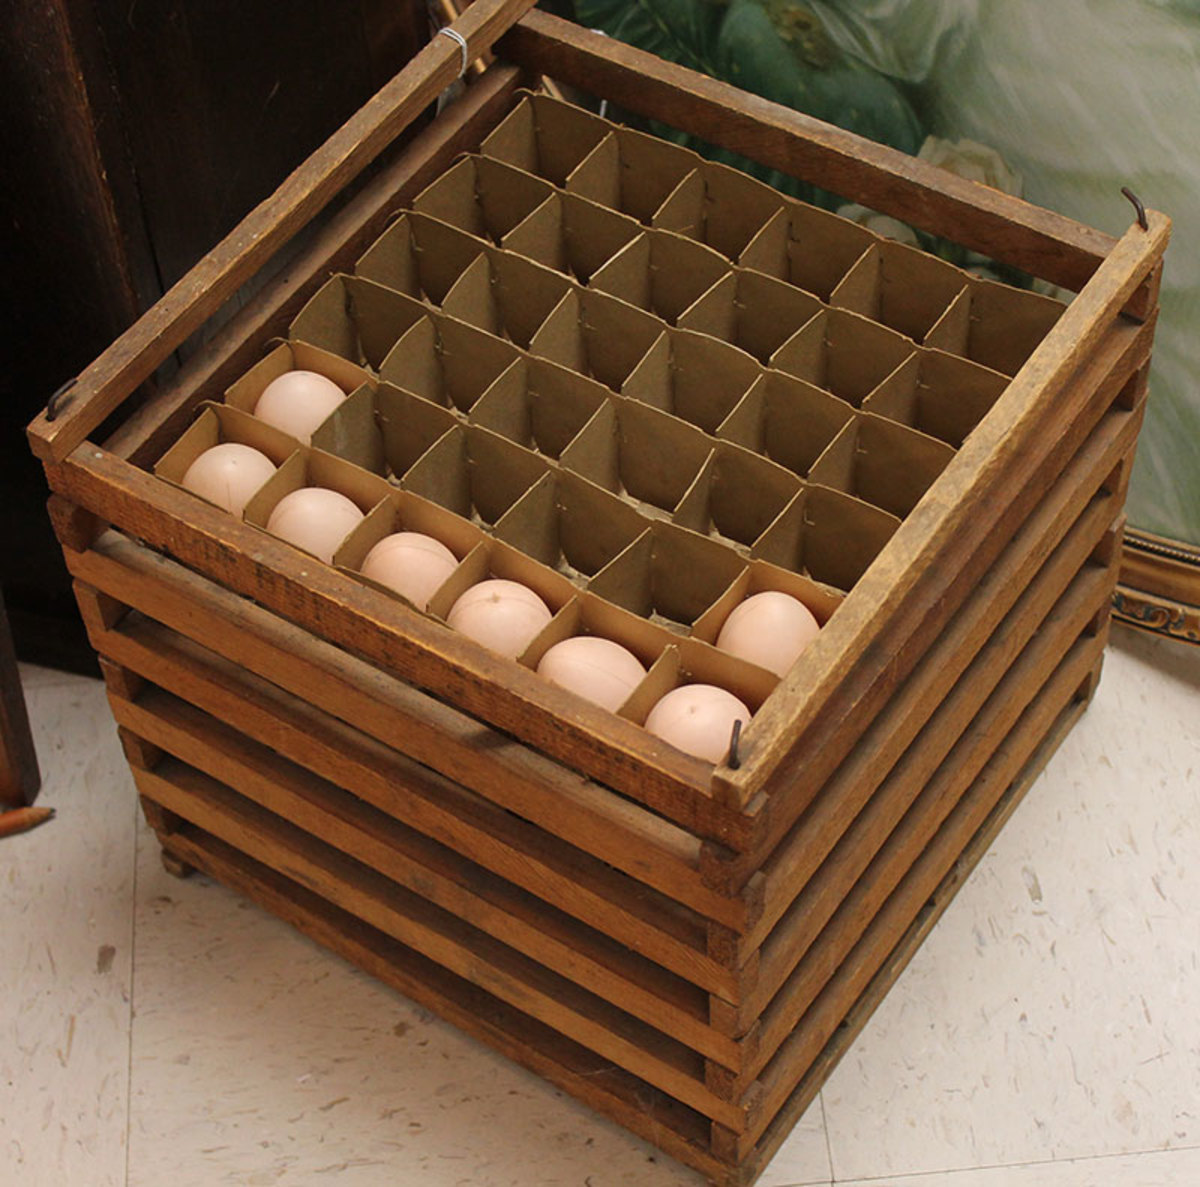 Egg crates made of wood